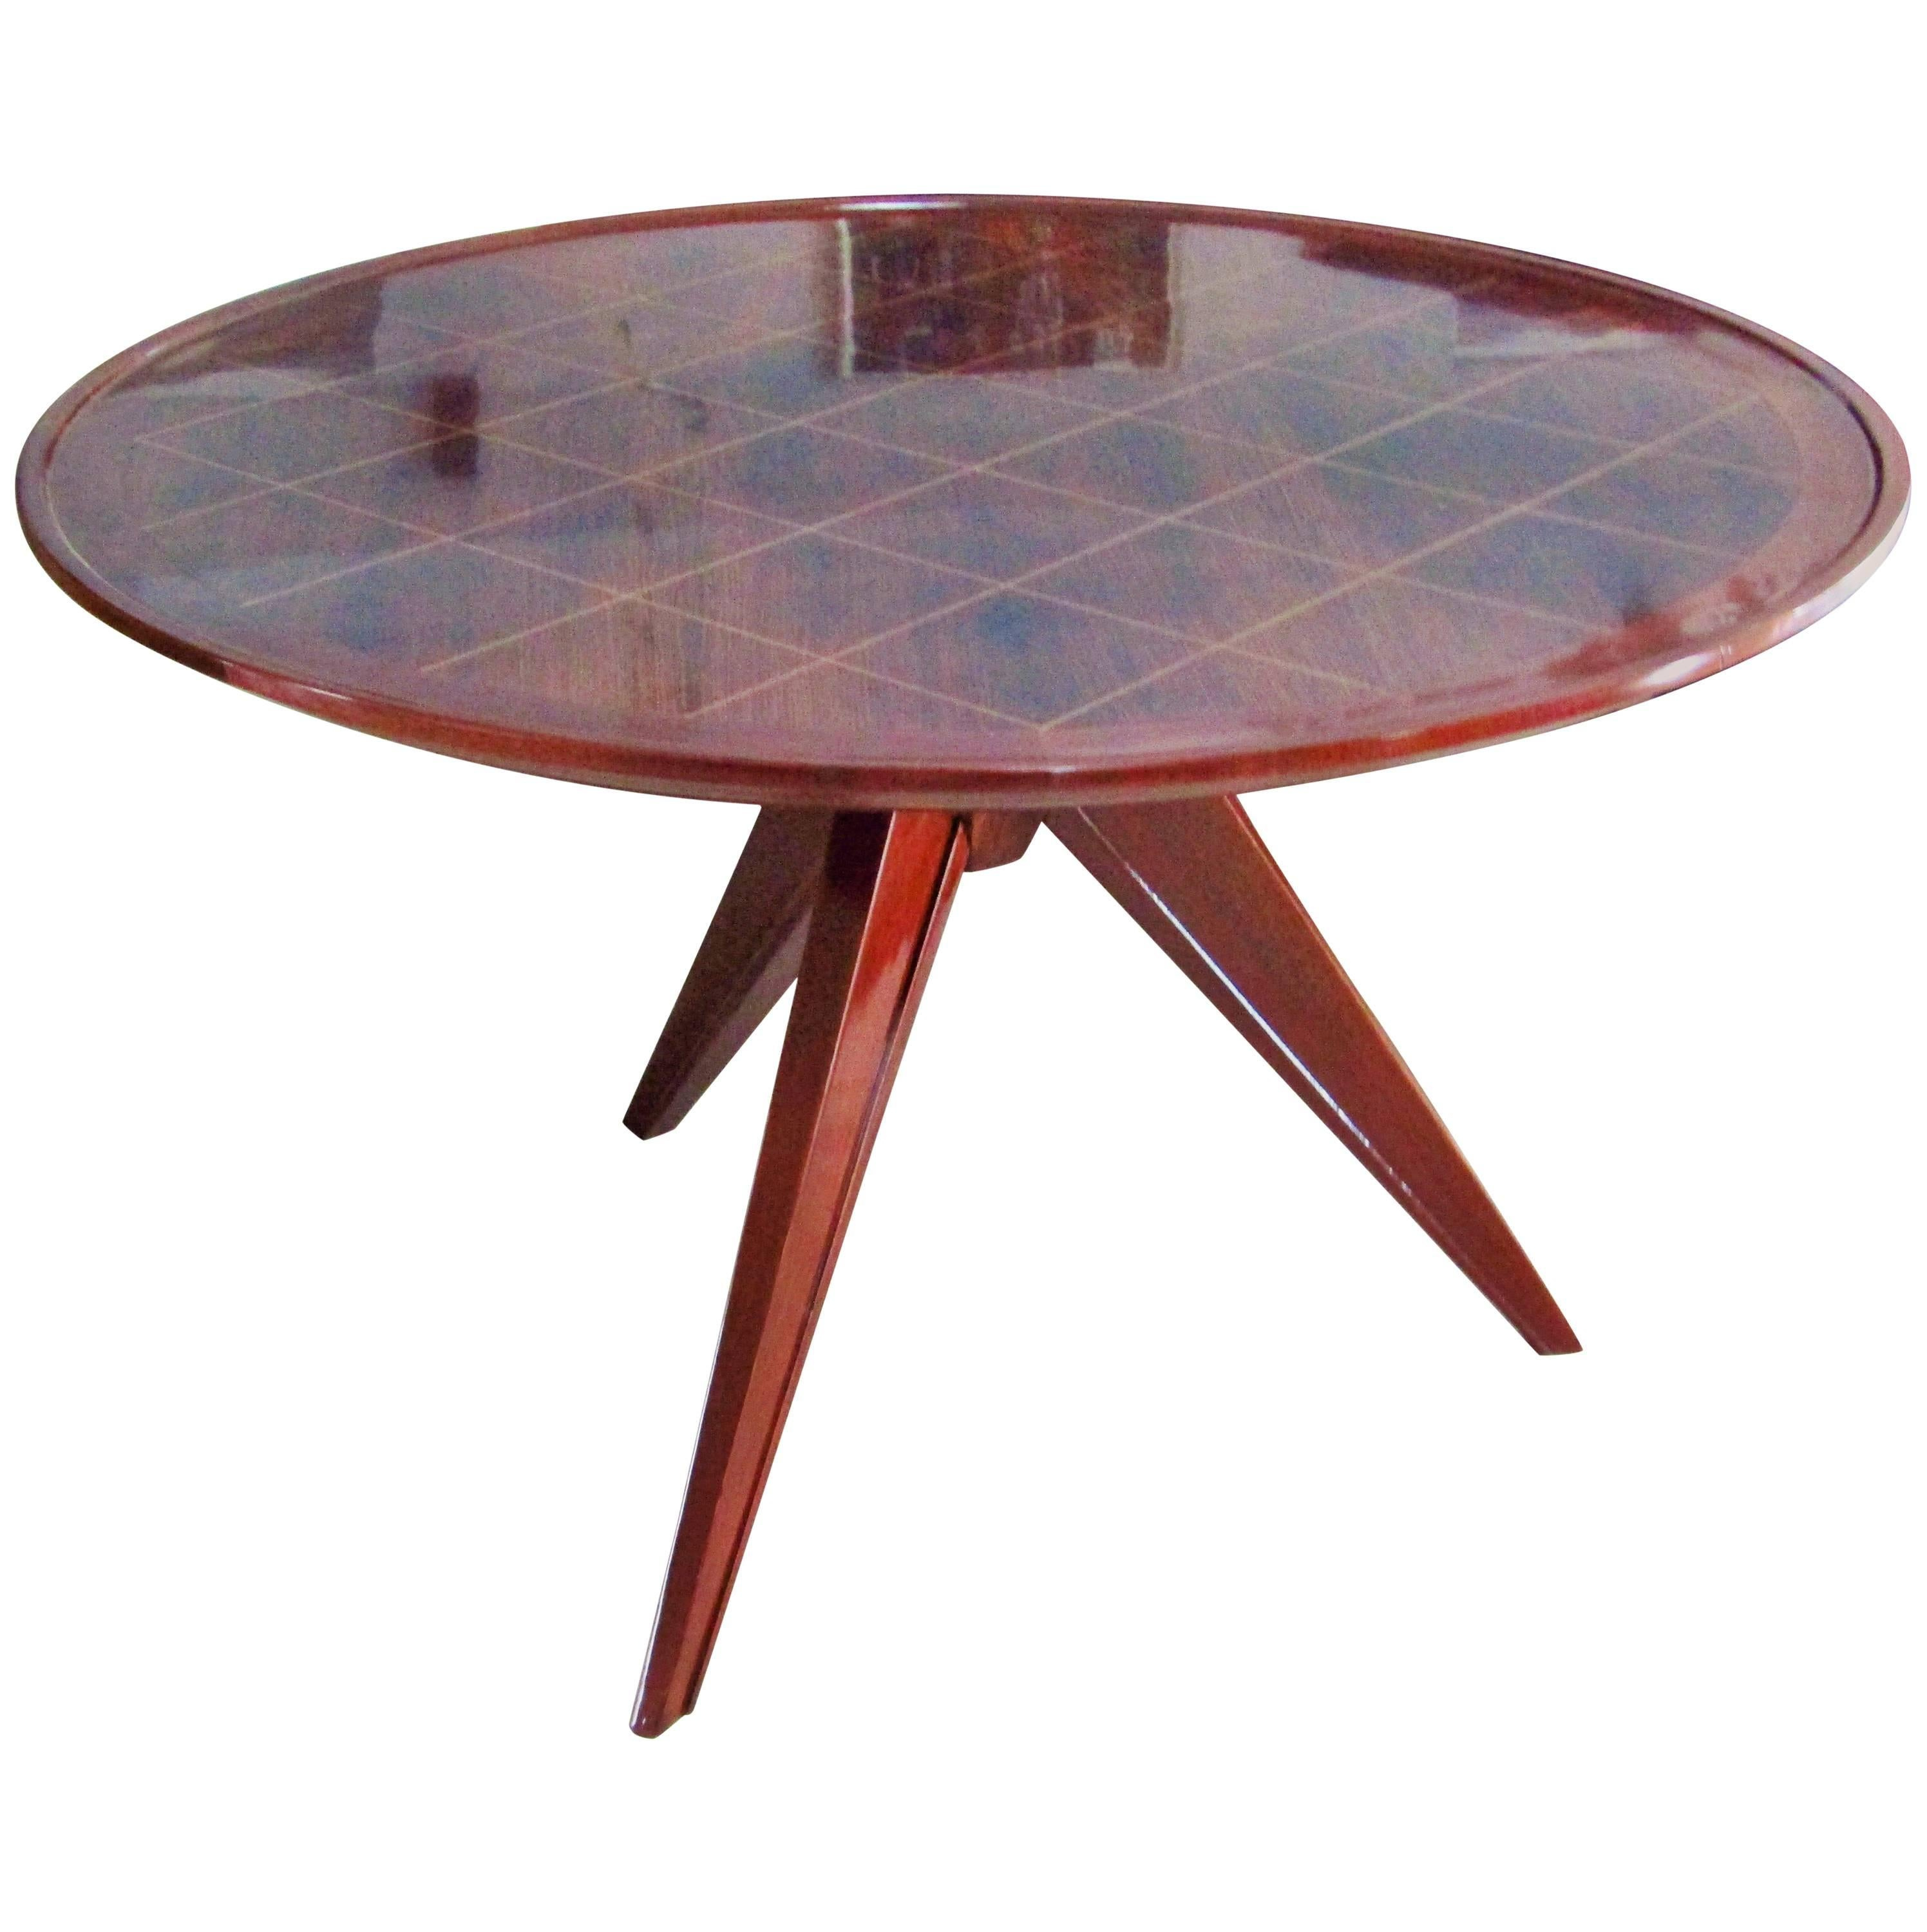 Midcentury Art Deco Rosewood Coffee Table, France, 1940s